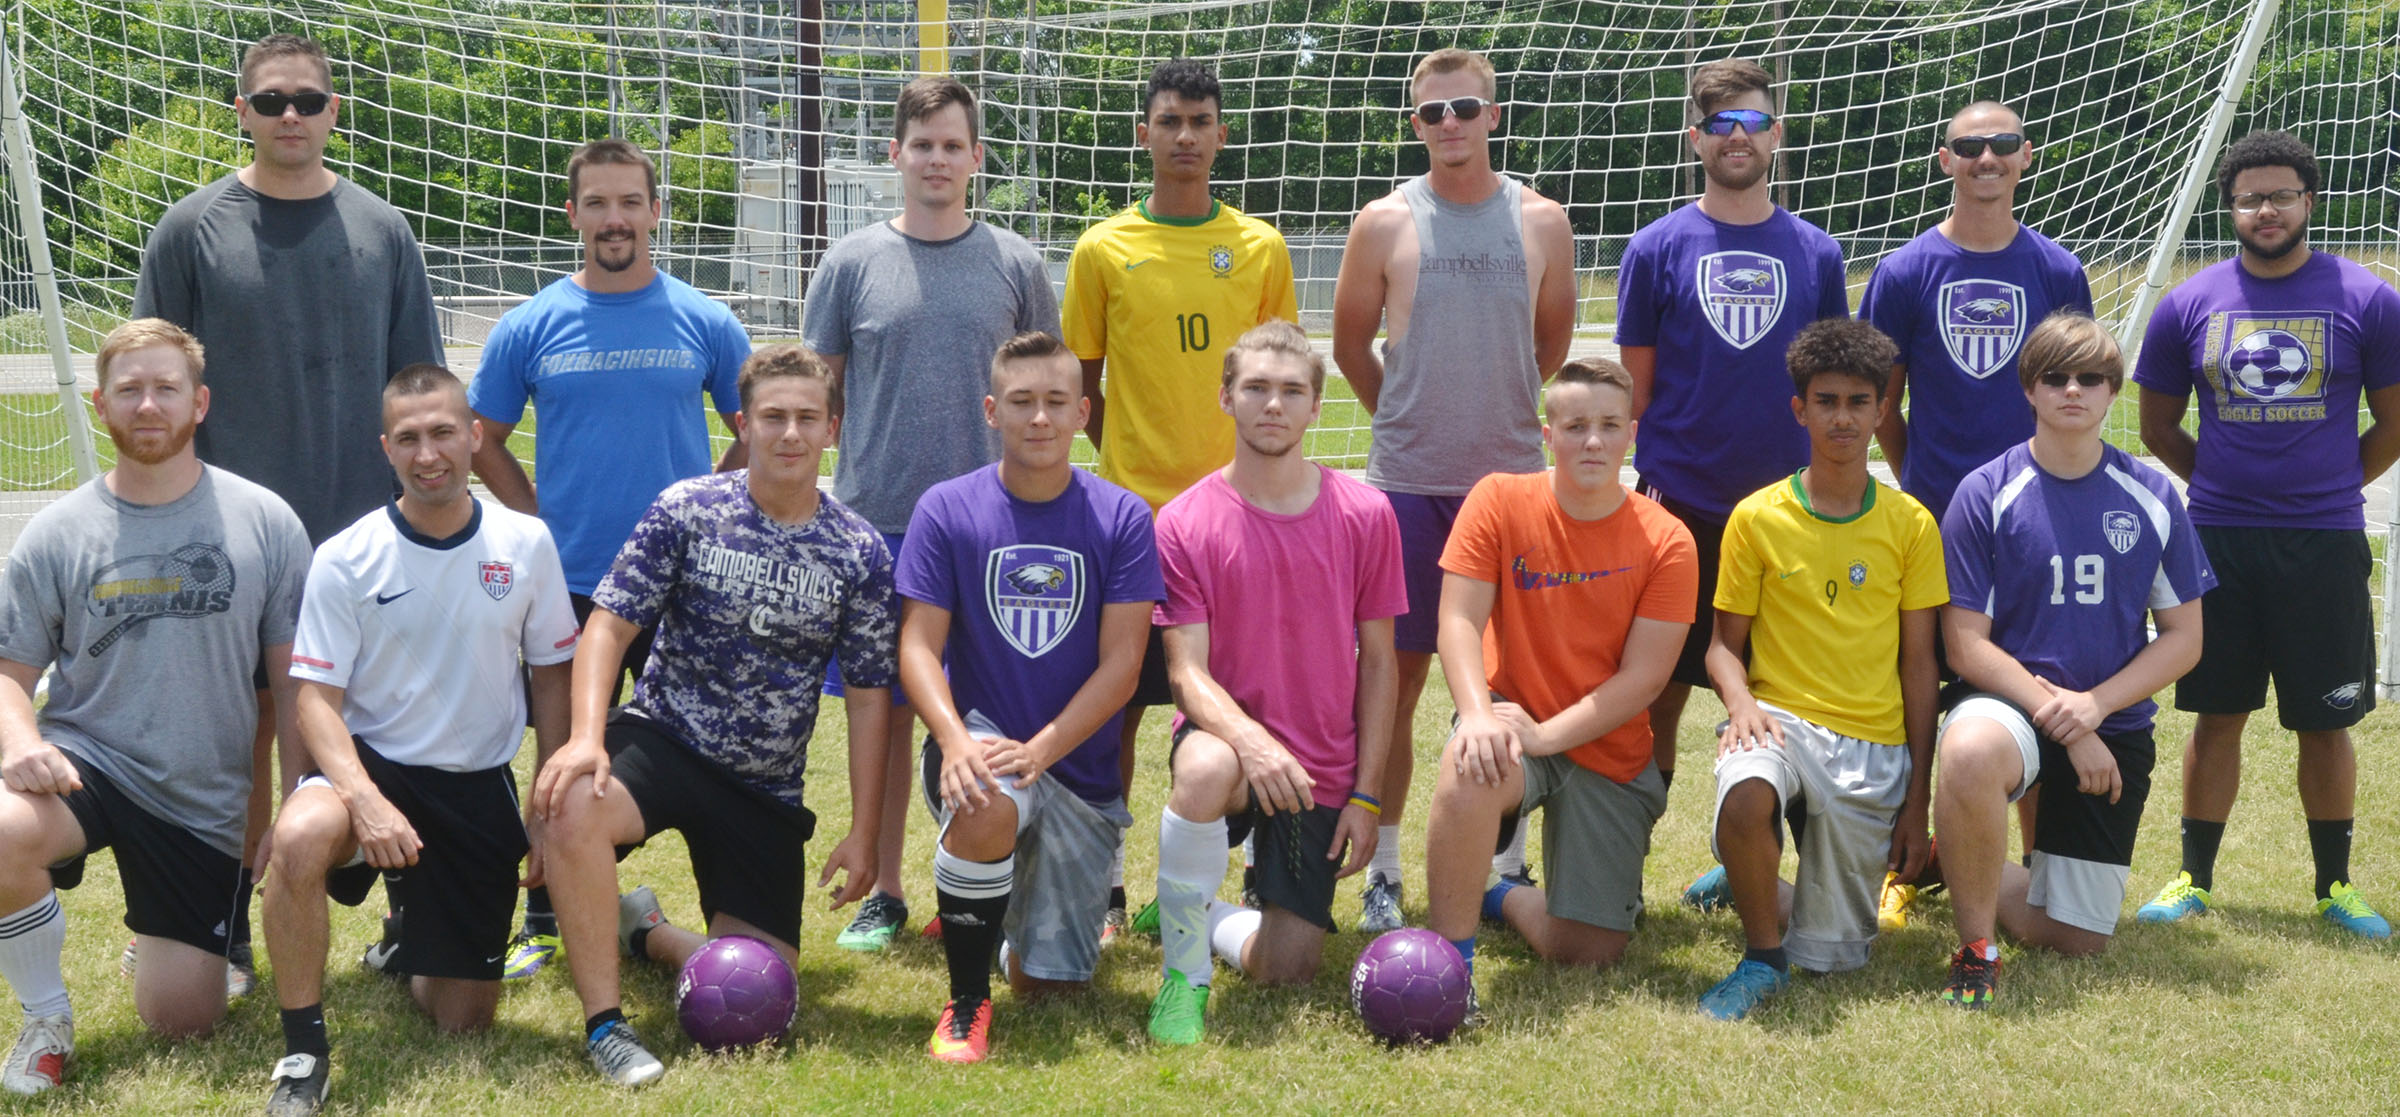 "CHS soccer team recently hosted its first alumni game, pitting former players against current players. From left, front, are alumni players Luke Lawless and Kevin Sharp, junior Brody Weeks, senior Cody Davis, Christian Berry and Justin Richerson, sophomore David Silva and junior Keidlan Boils. Back, alumni players Lincoln ""Bubba"" Lawless, Drew Skaggs, Jeff Muncie, Daniel Silva, Logan Dial, Matt Schmuck, who is also an assistant coach, Bradley Harris, who is head coach, and Malique Spaulding, who is also an assistant coach."